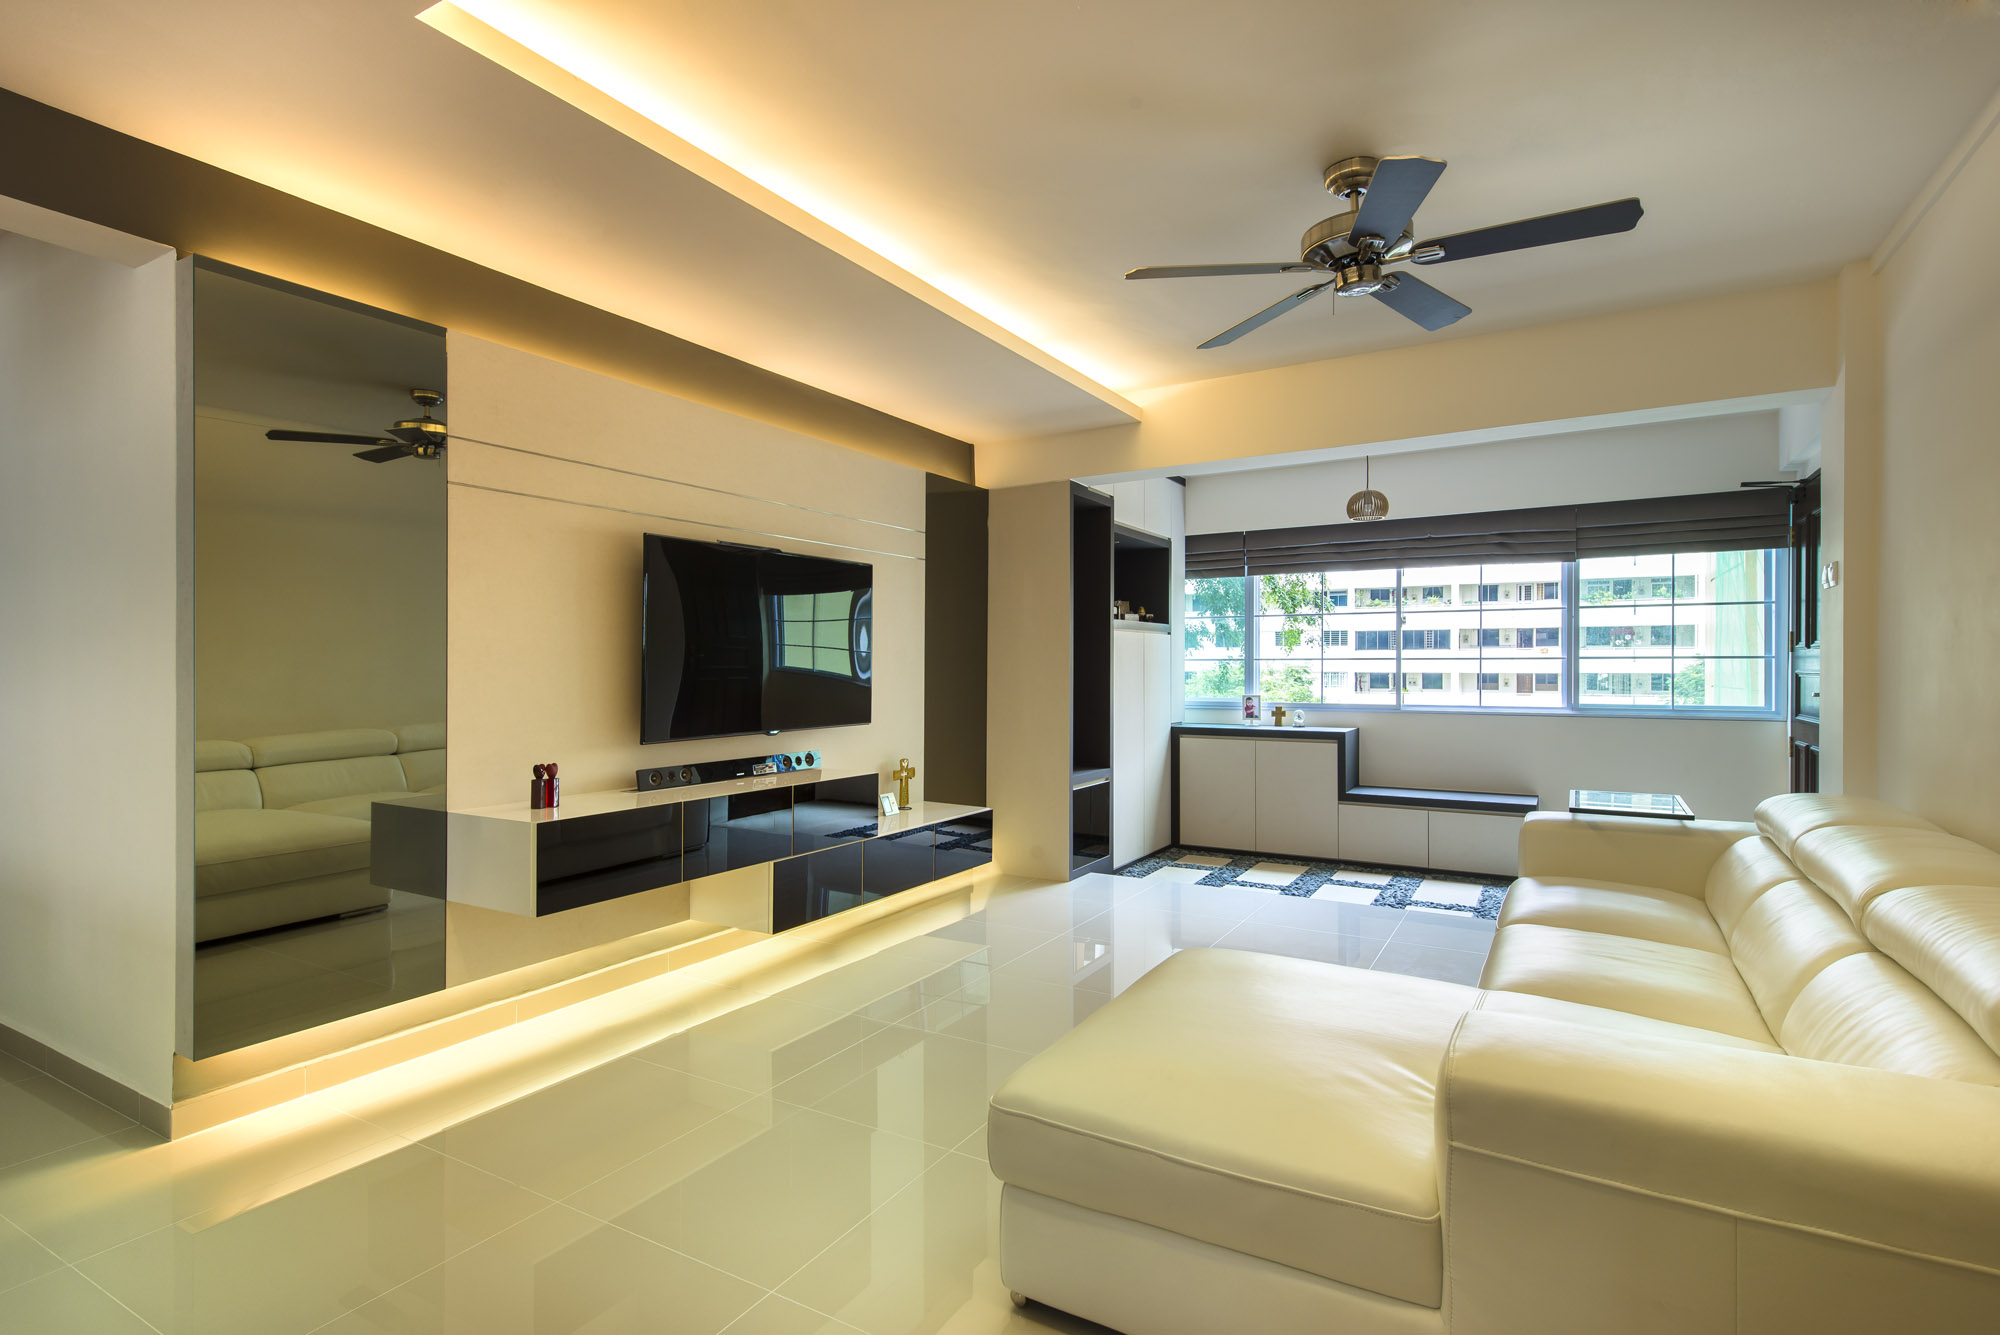 Case study hdb 5 rooms at bedok rezt relax interior for Hdb 5 room interior design ideas